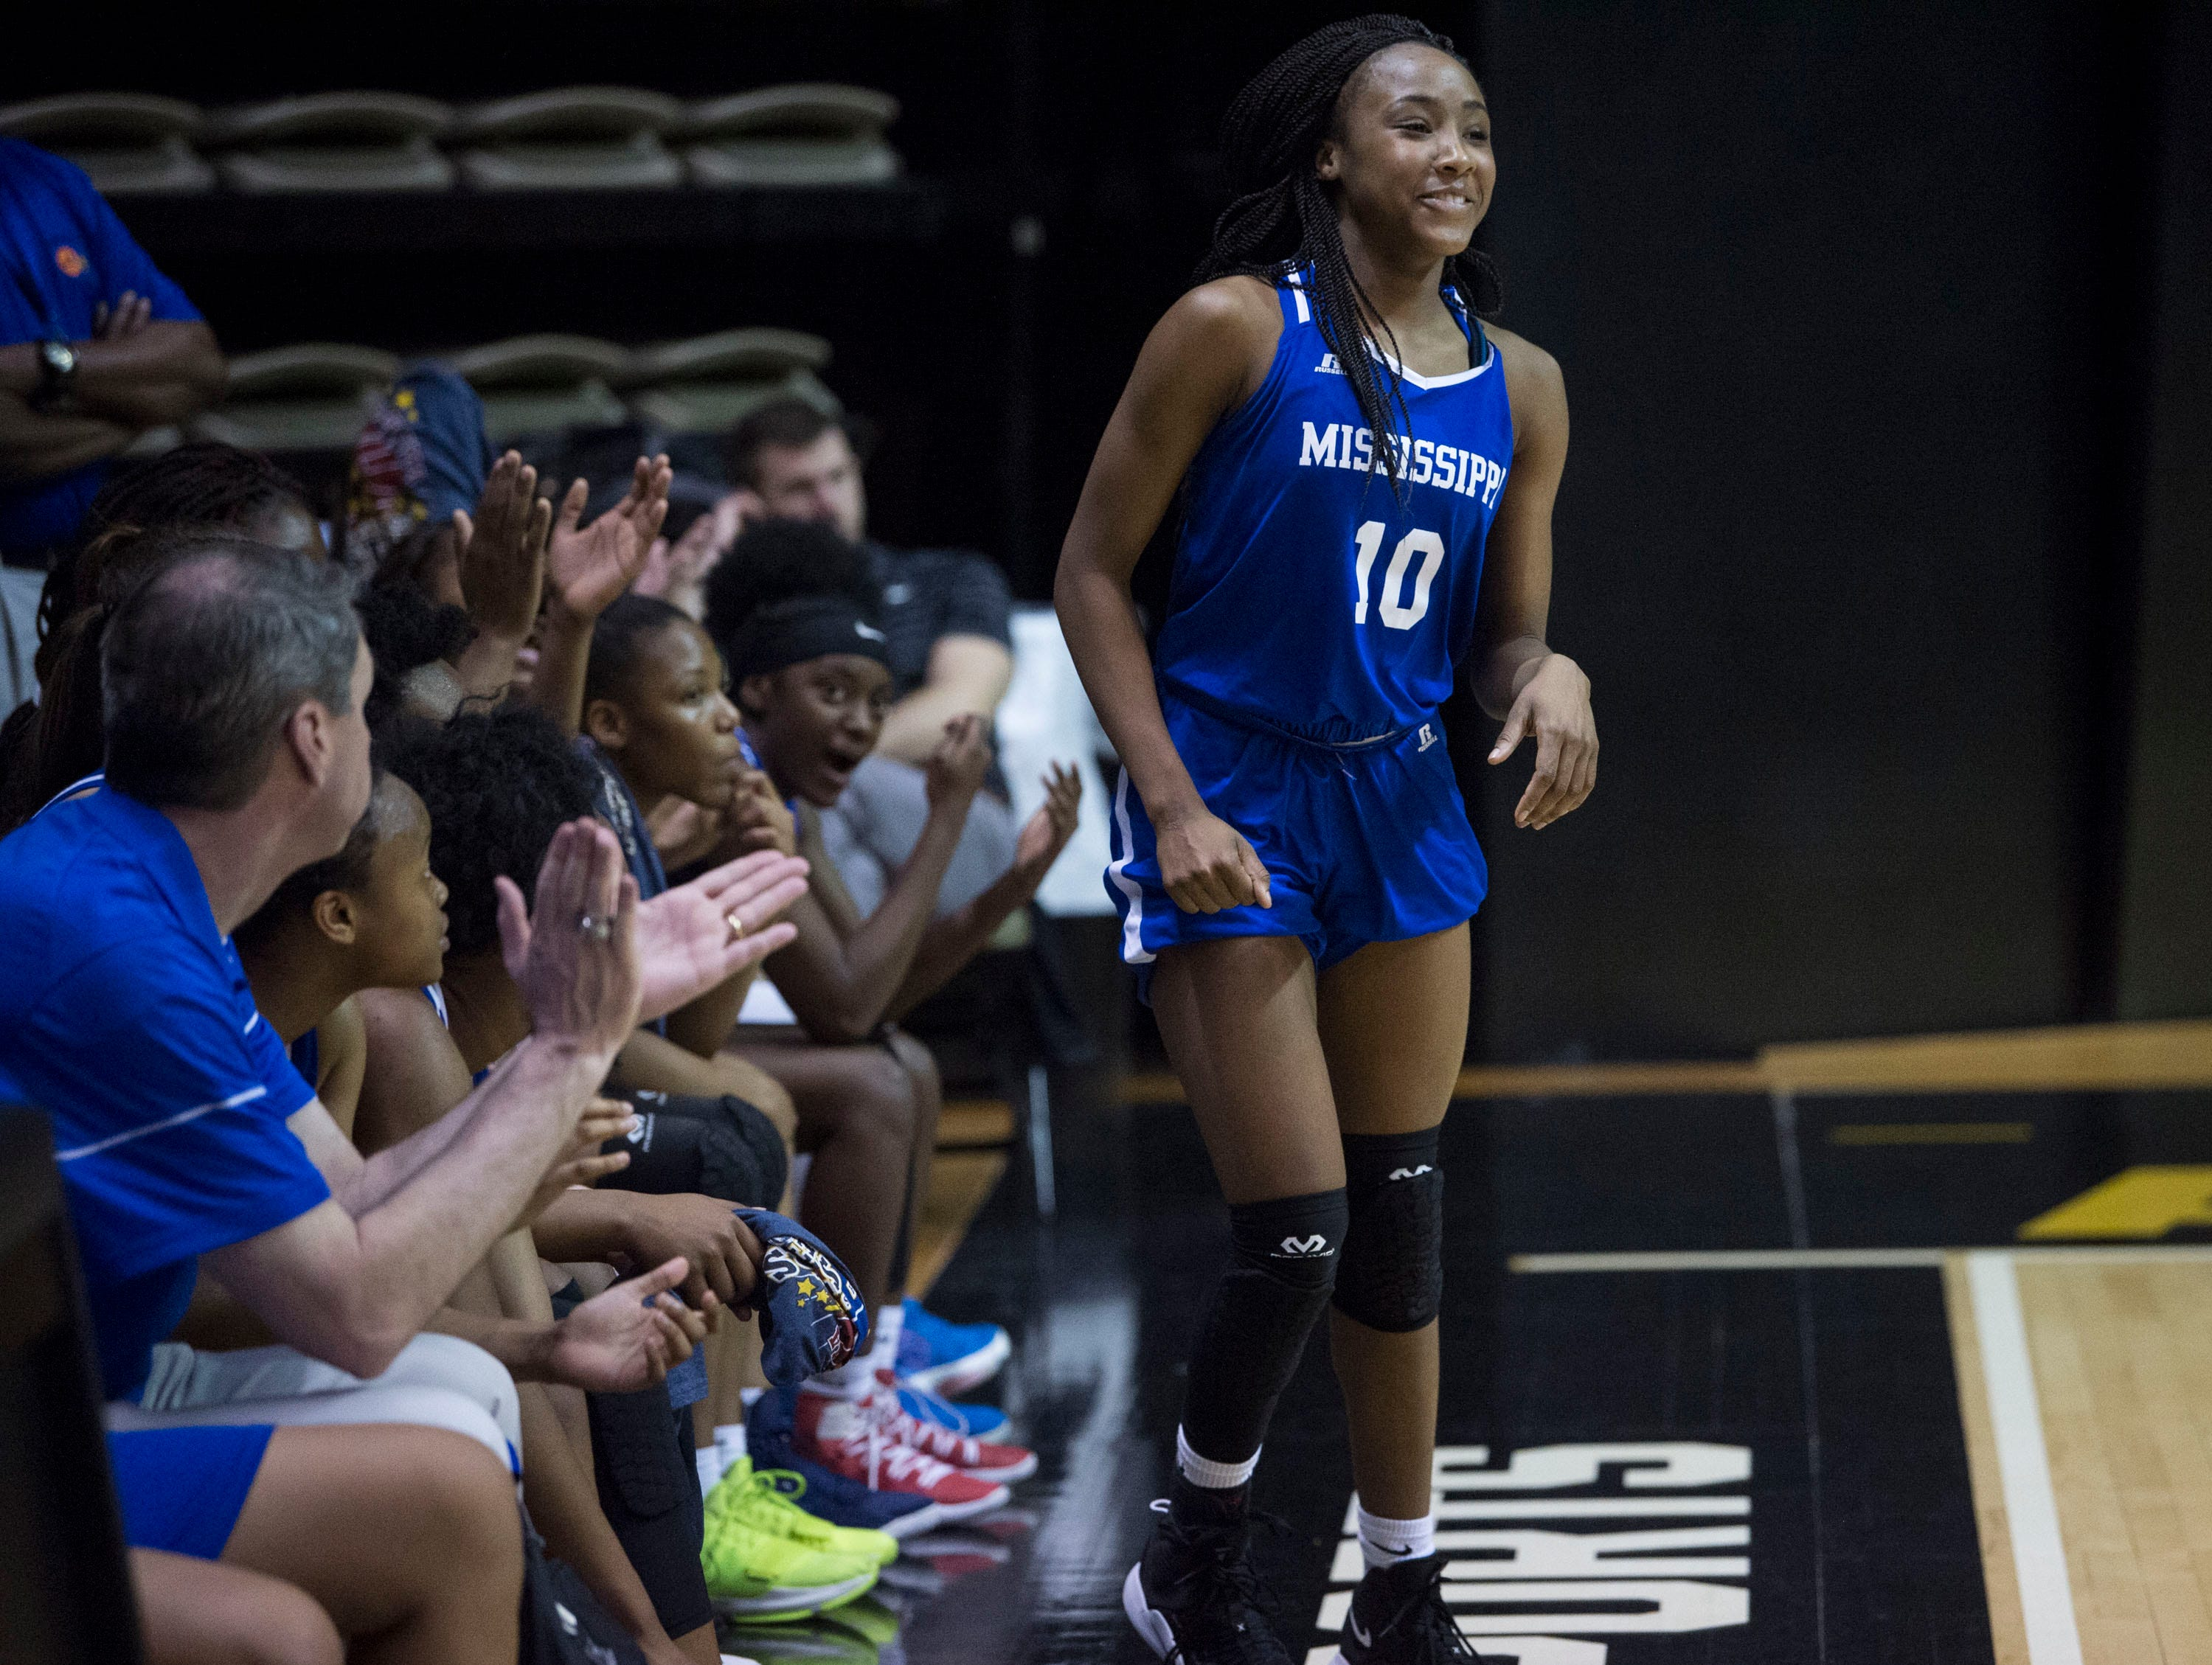 Mississippi's Hannah White (10) is announced as the Mississippi team MVP during the Alabama-Mississippi All-Star game at the Dunn-Oliver Acadome in Montgomery, Ala., on Friday, March 15, 2019. Alabama All-stars defeated the Mississippi All-stars 101-82.